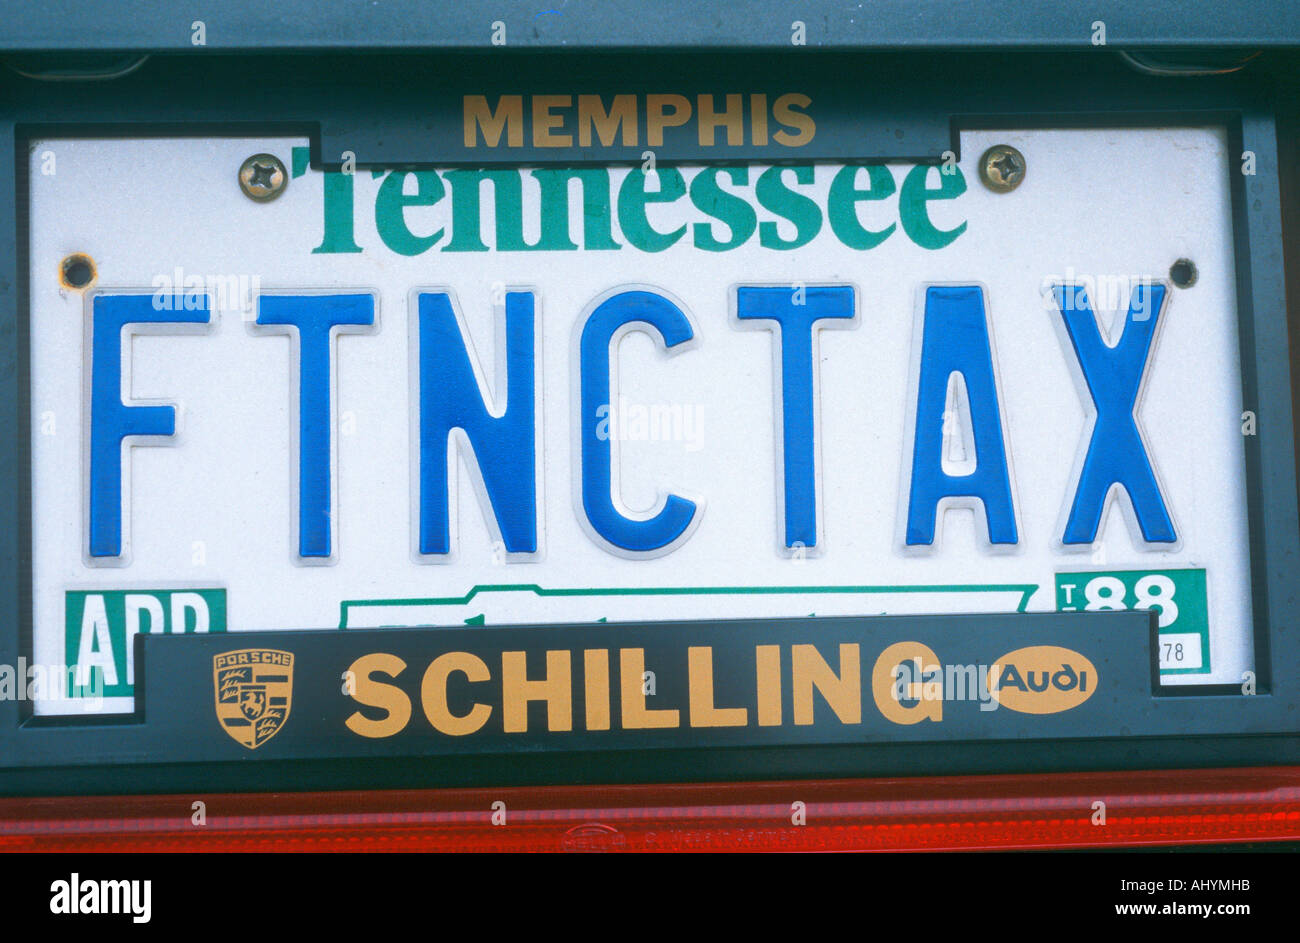 Vanity License Plate Tennessee Stock Photo, Royalty Free Image ...